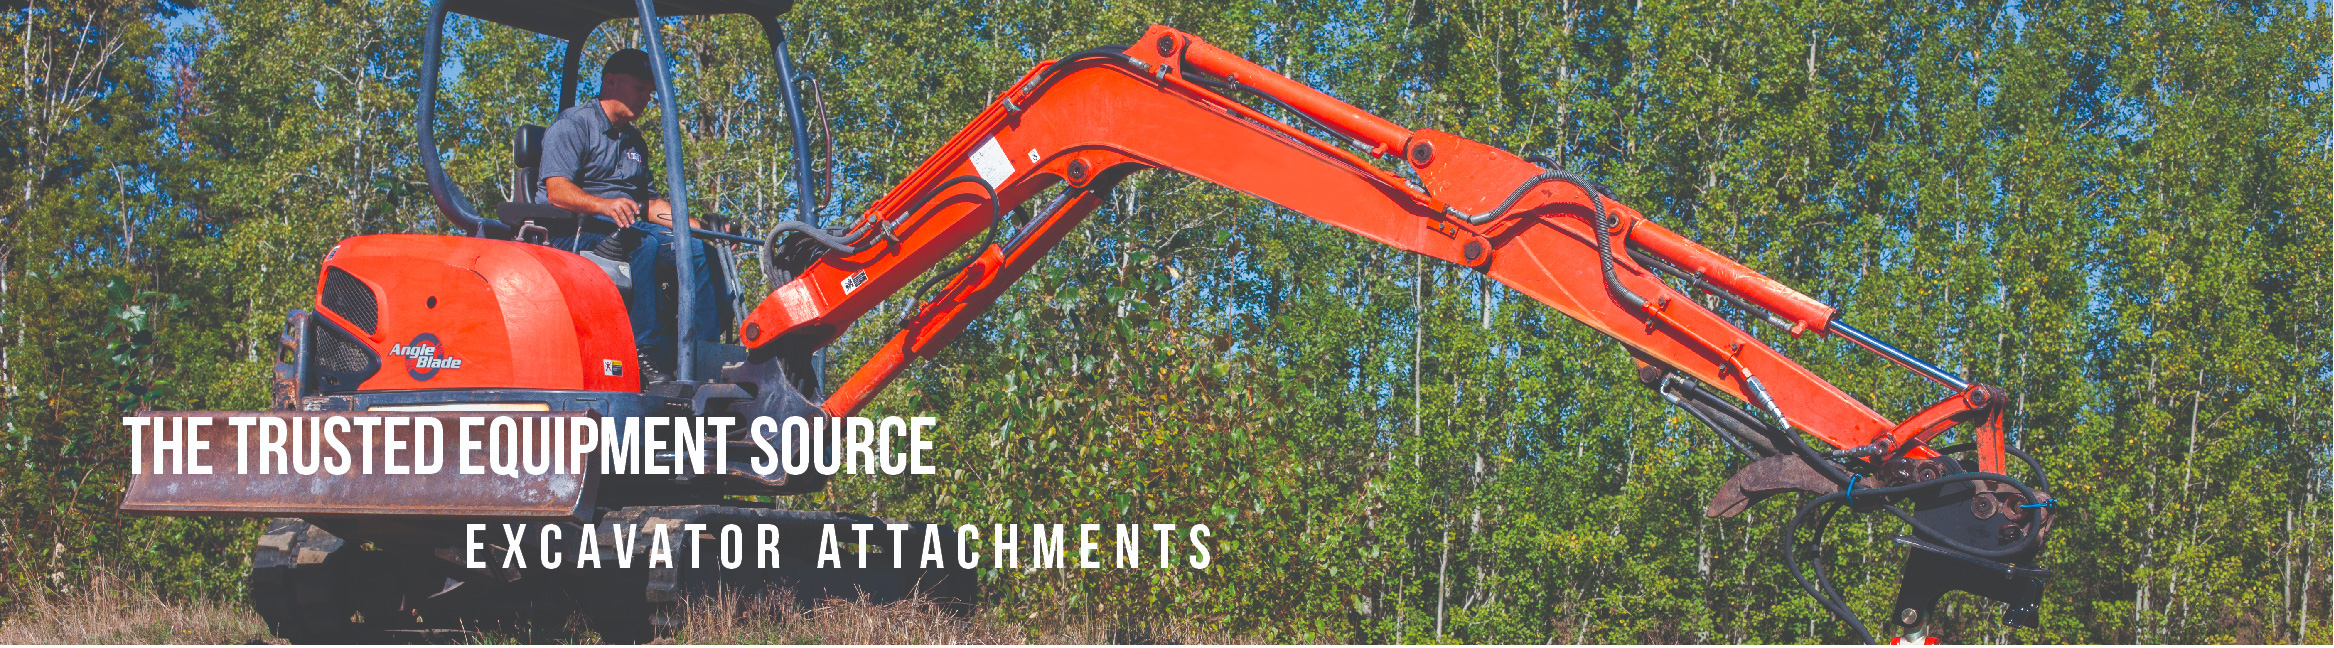 Shop Excavator Attachments online at Skid Steer Solutions. Wide range of tough and rugged mowers, auger drives and more.